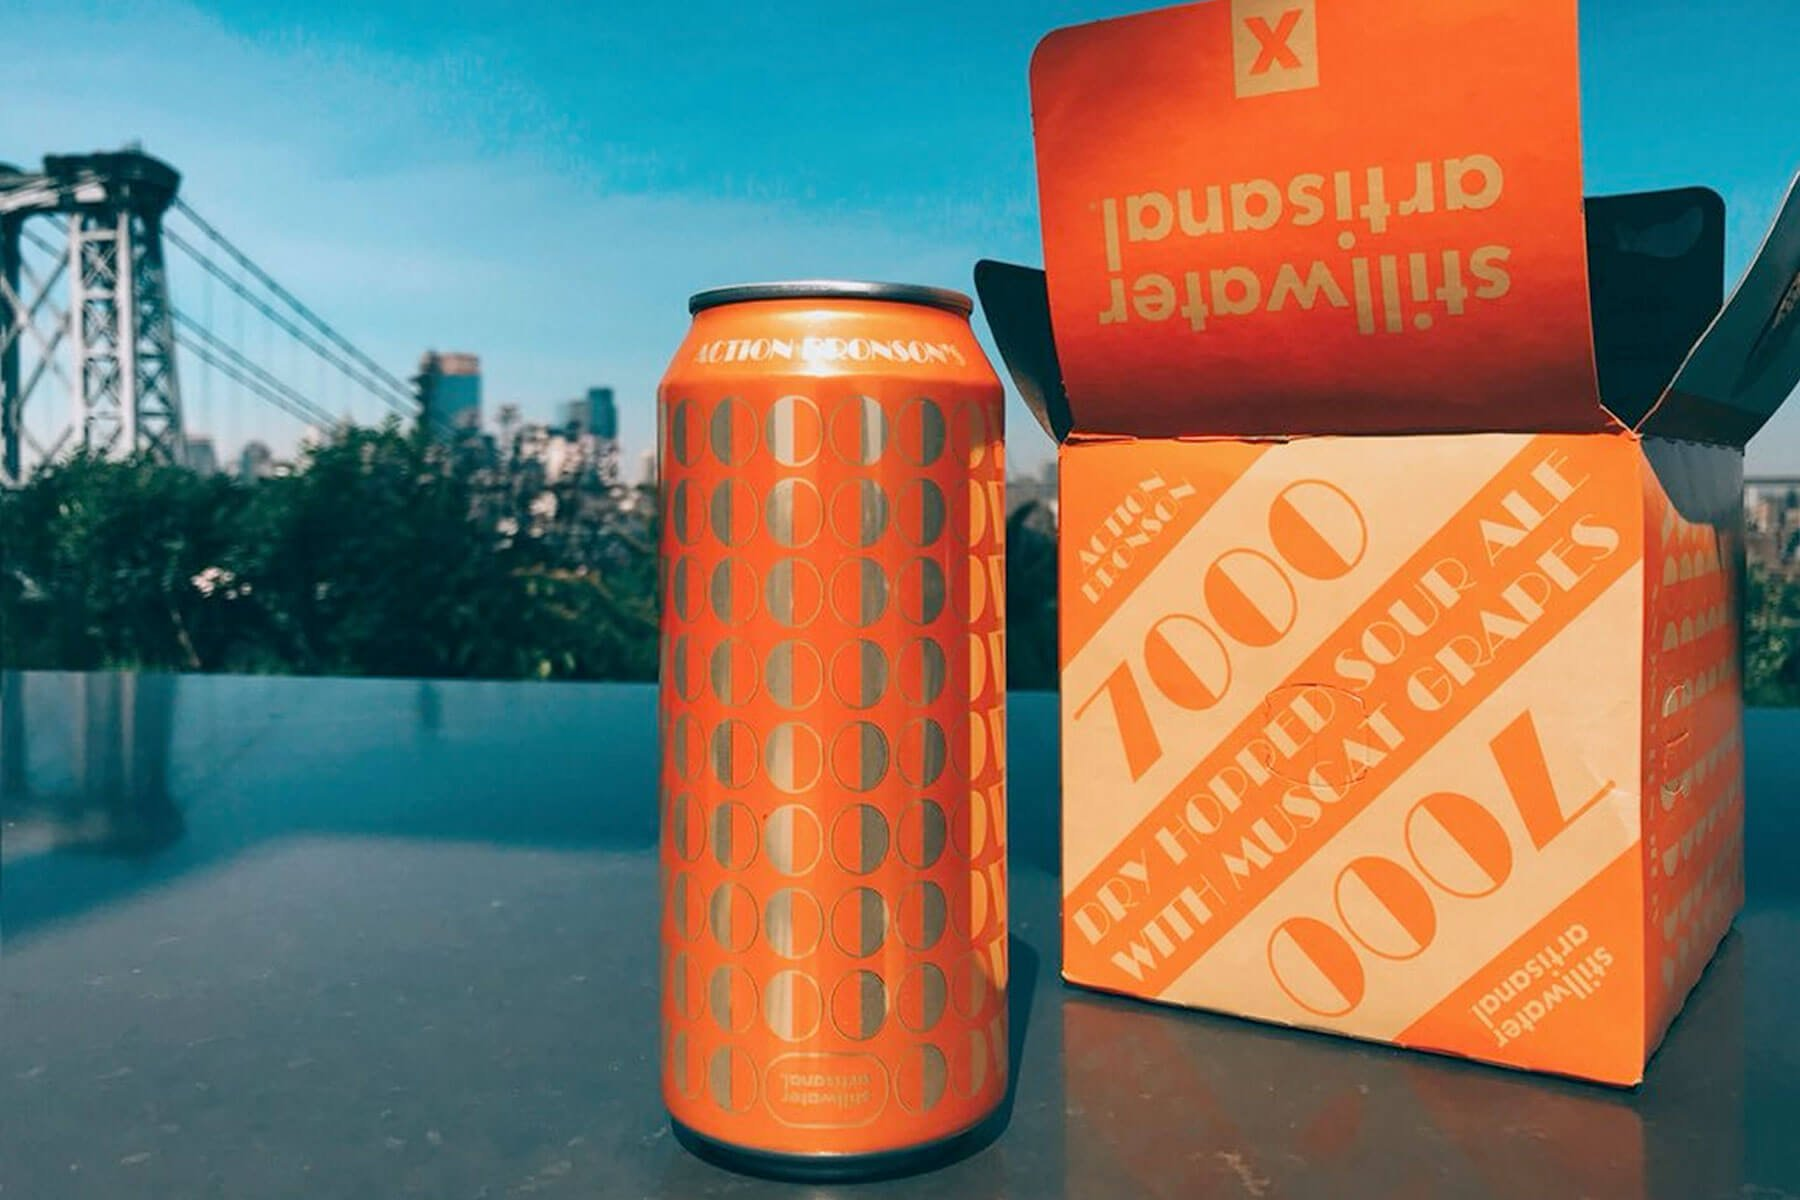 16 oz. can of 7000 and a Four Pack Box by Stillwater Artisanal Ales